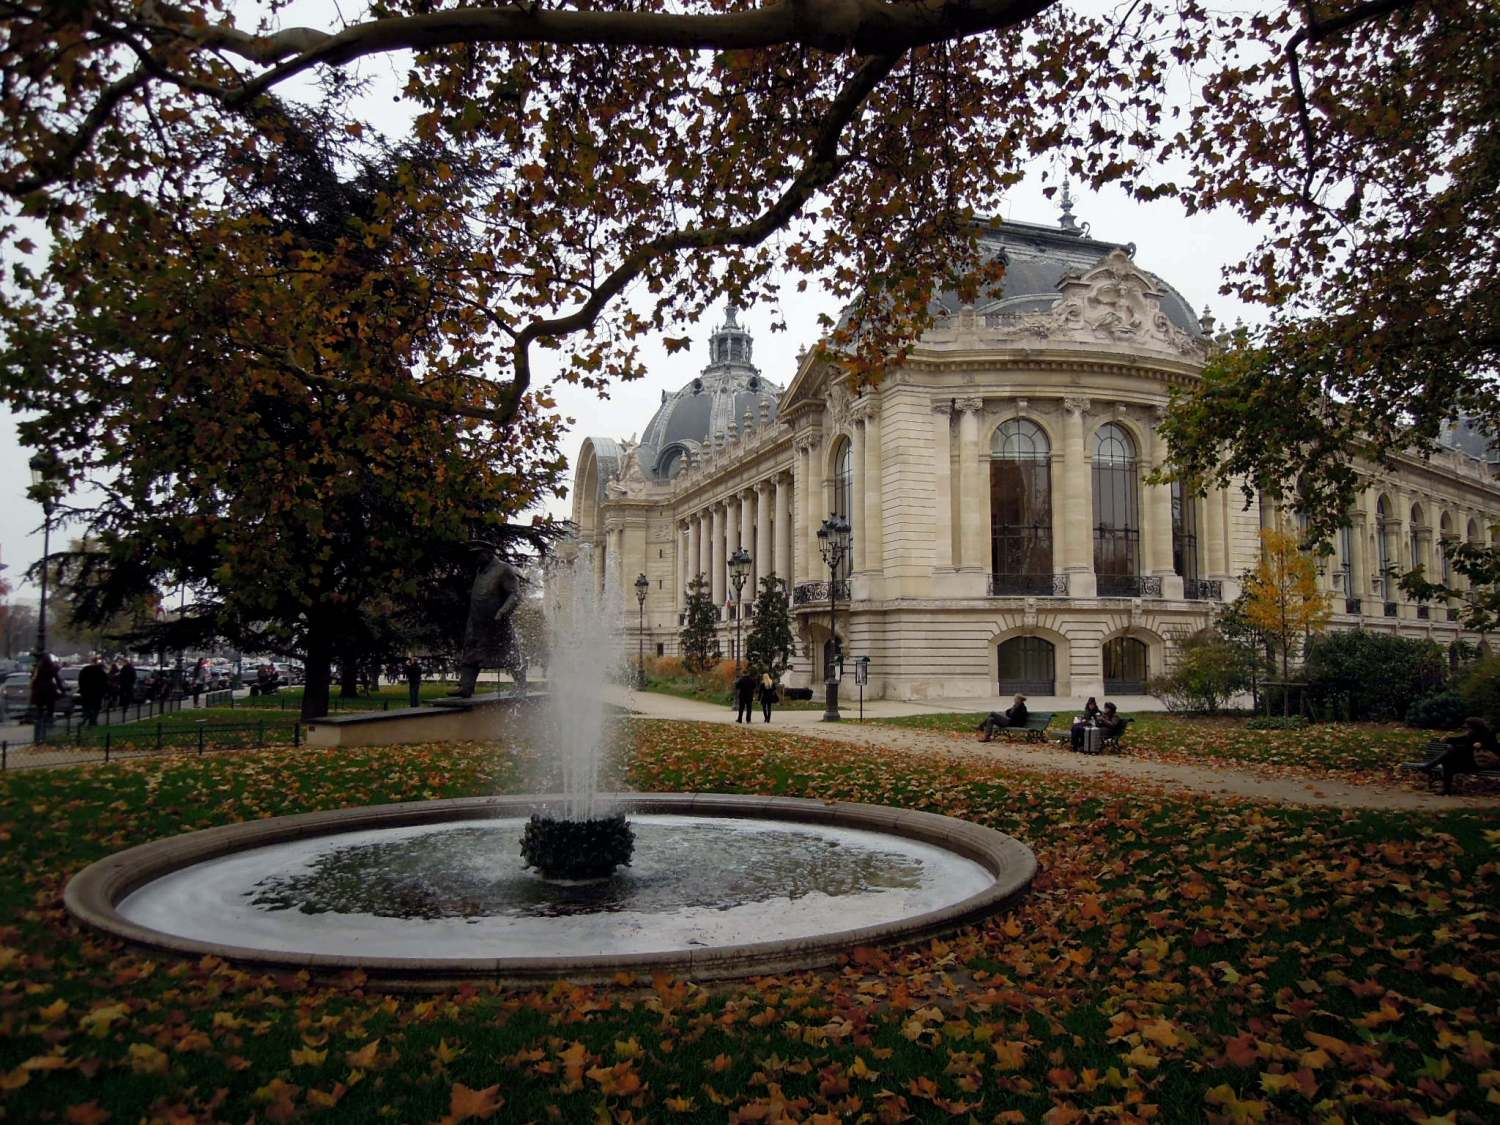 Le Petit Palais, autumn leaves, and a fountain